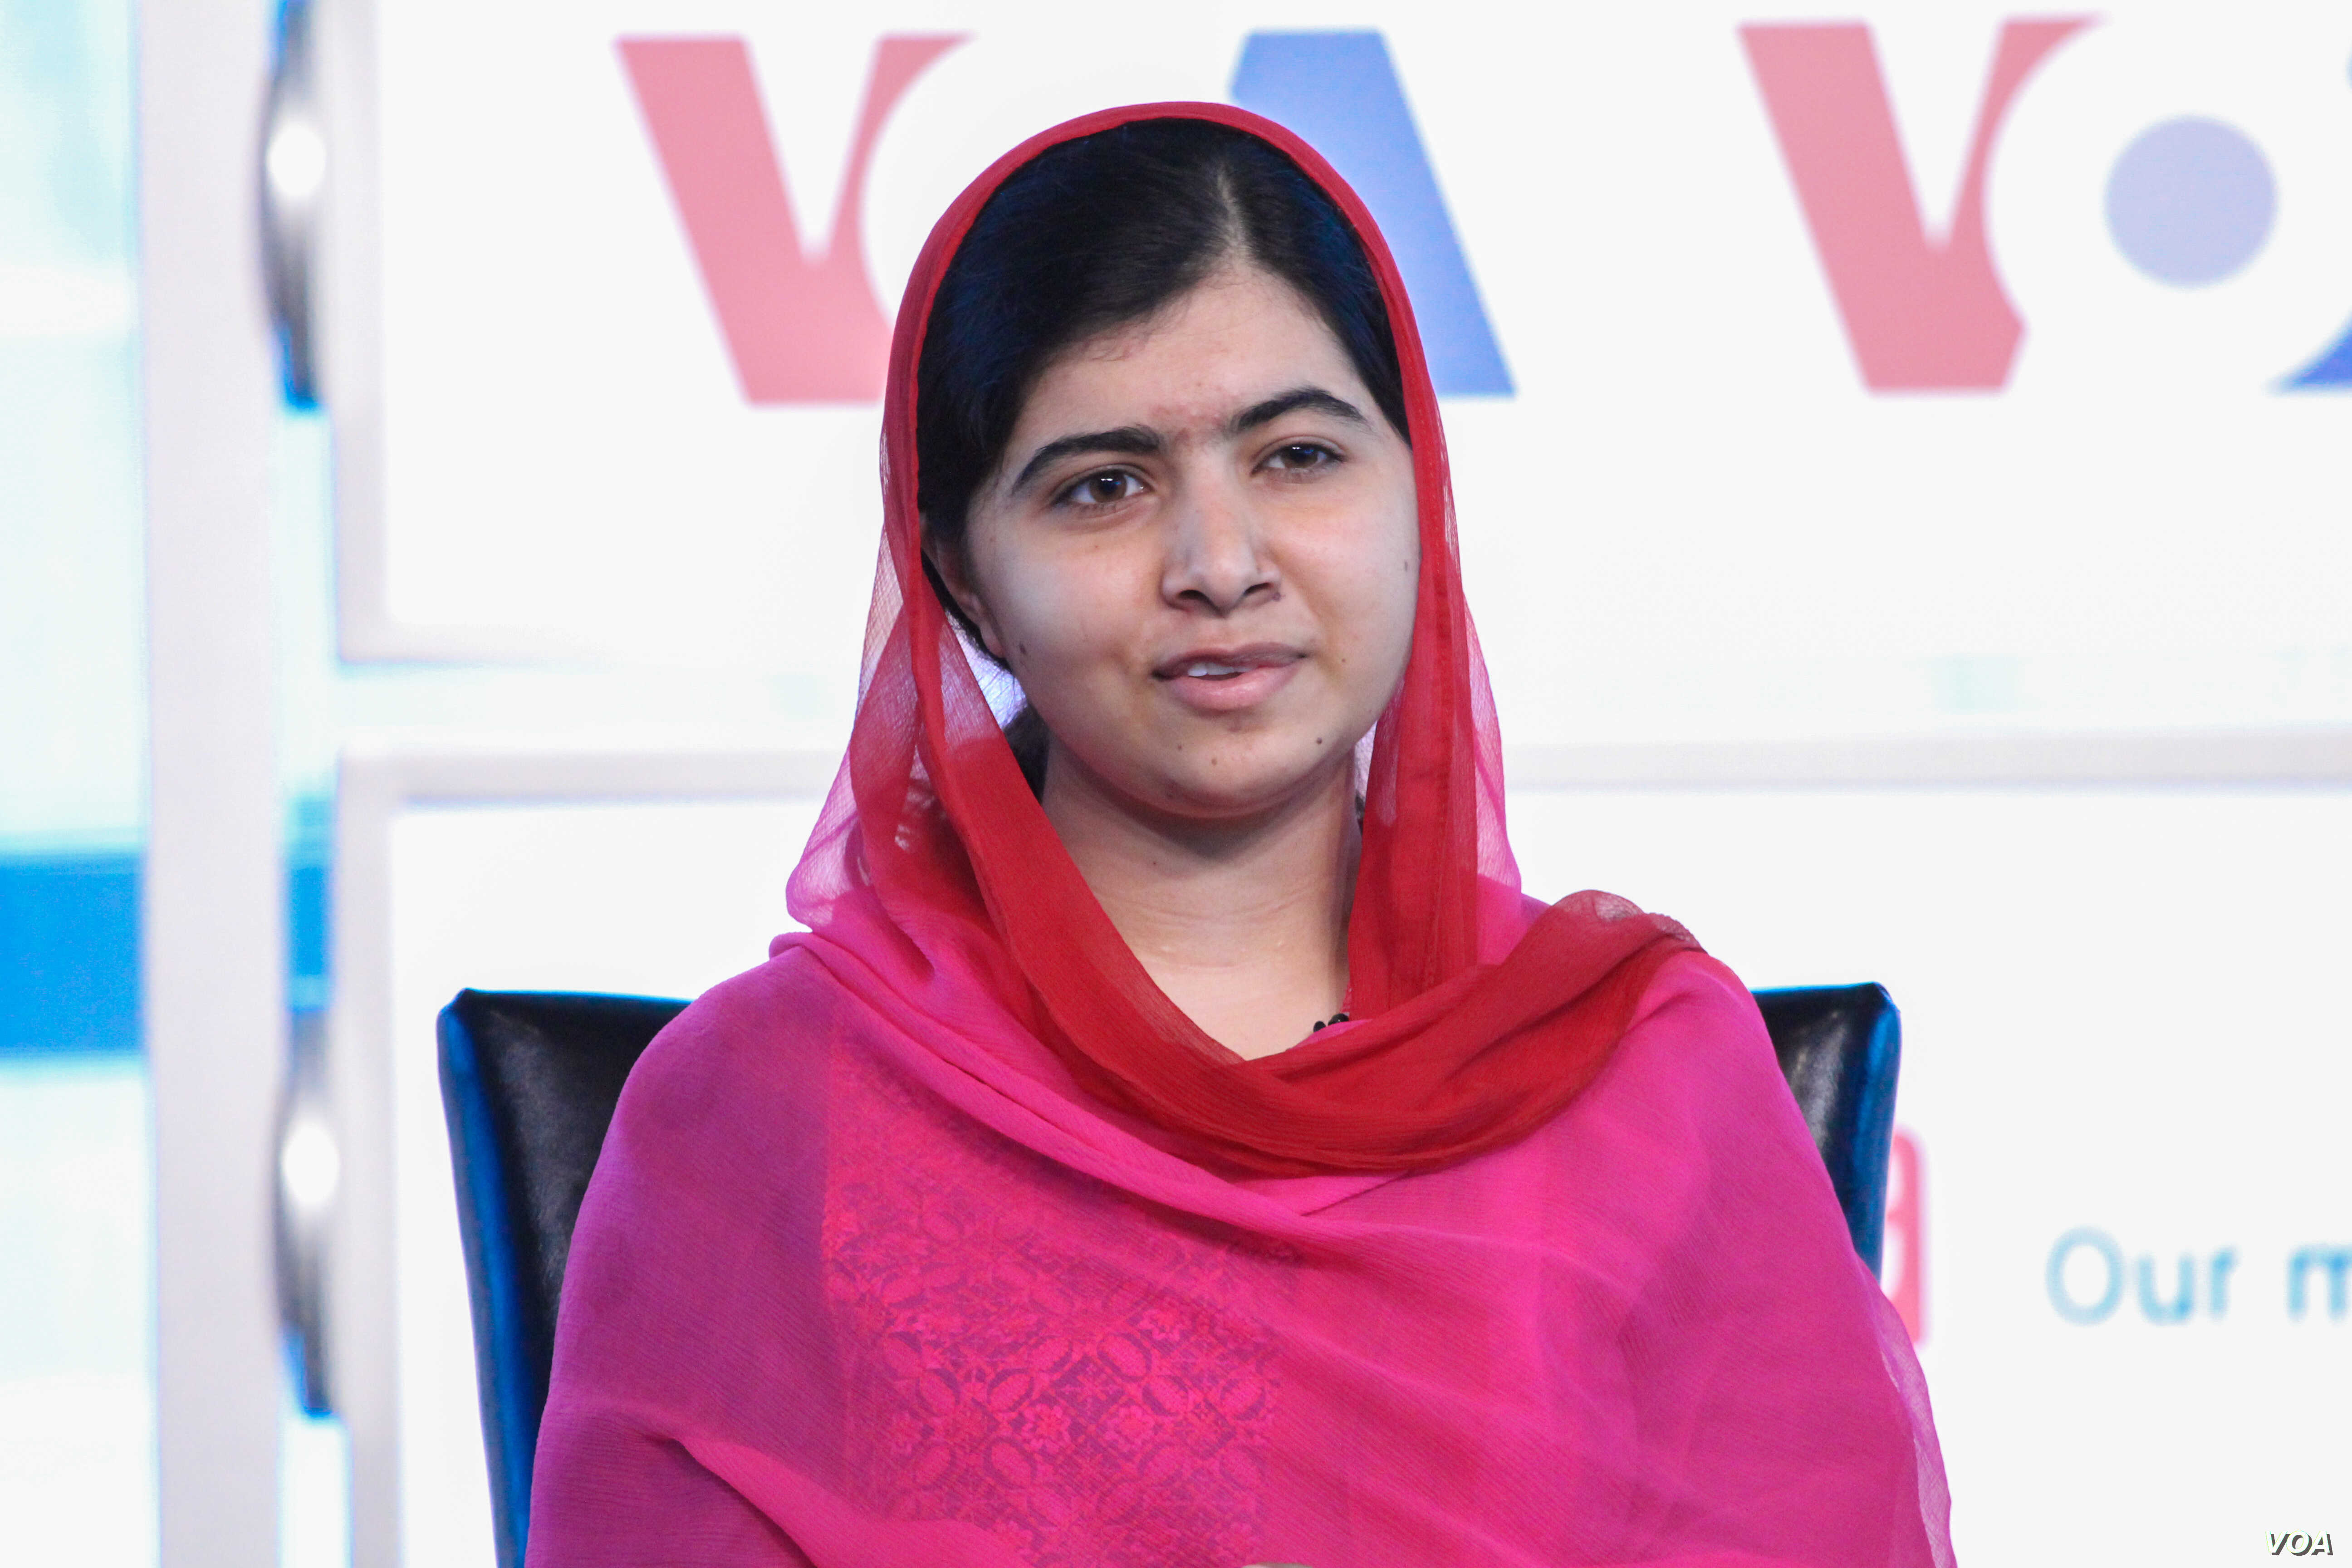 """VOA's Deewa Service hosted an event at the Newseum called """"Malala: Our time. Our place. Our moment in the human race"""" featuring Malala Yousafzai and her father, Ziauddin Yousafzai, Aug. 30, 2015."""